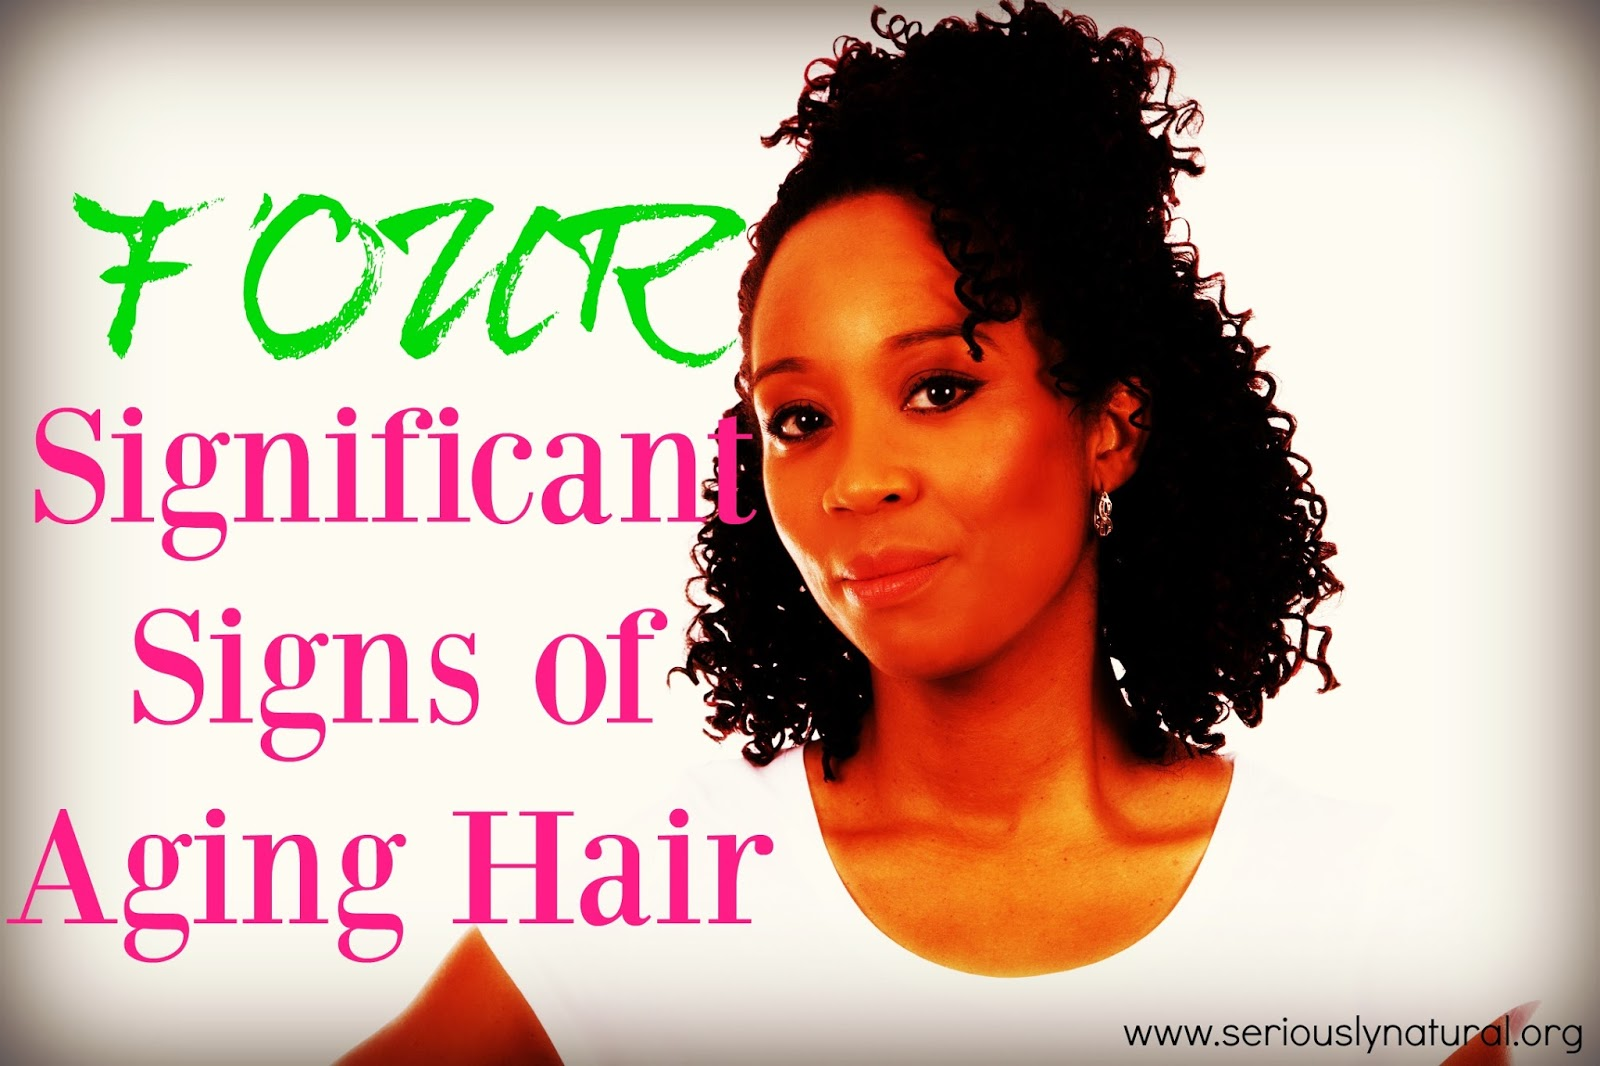 4 Significant Signs of Aging Hair